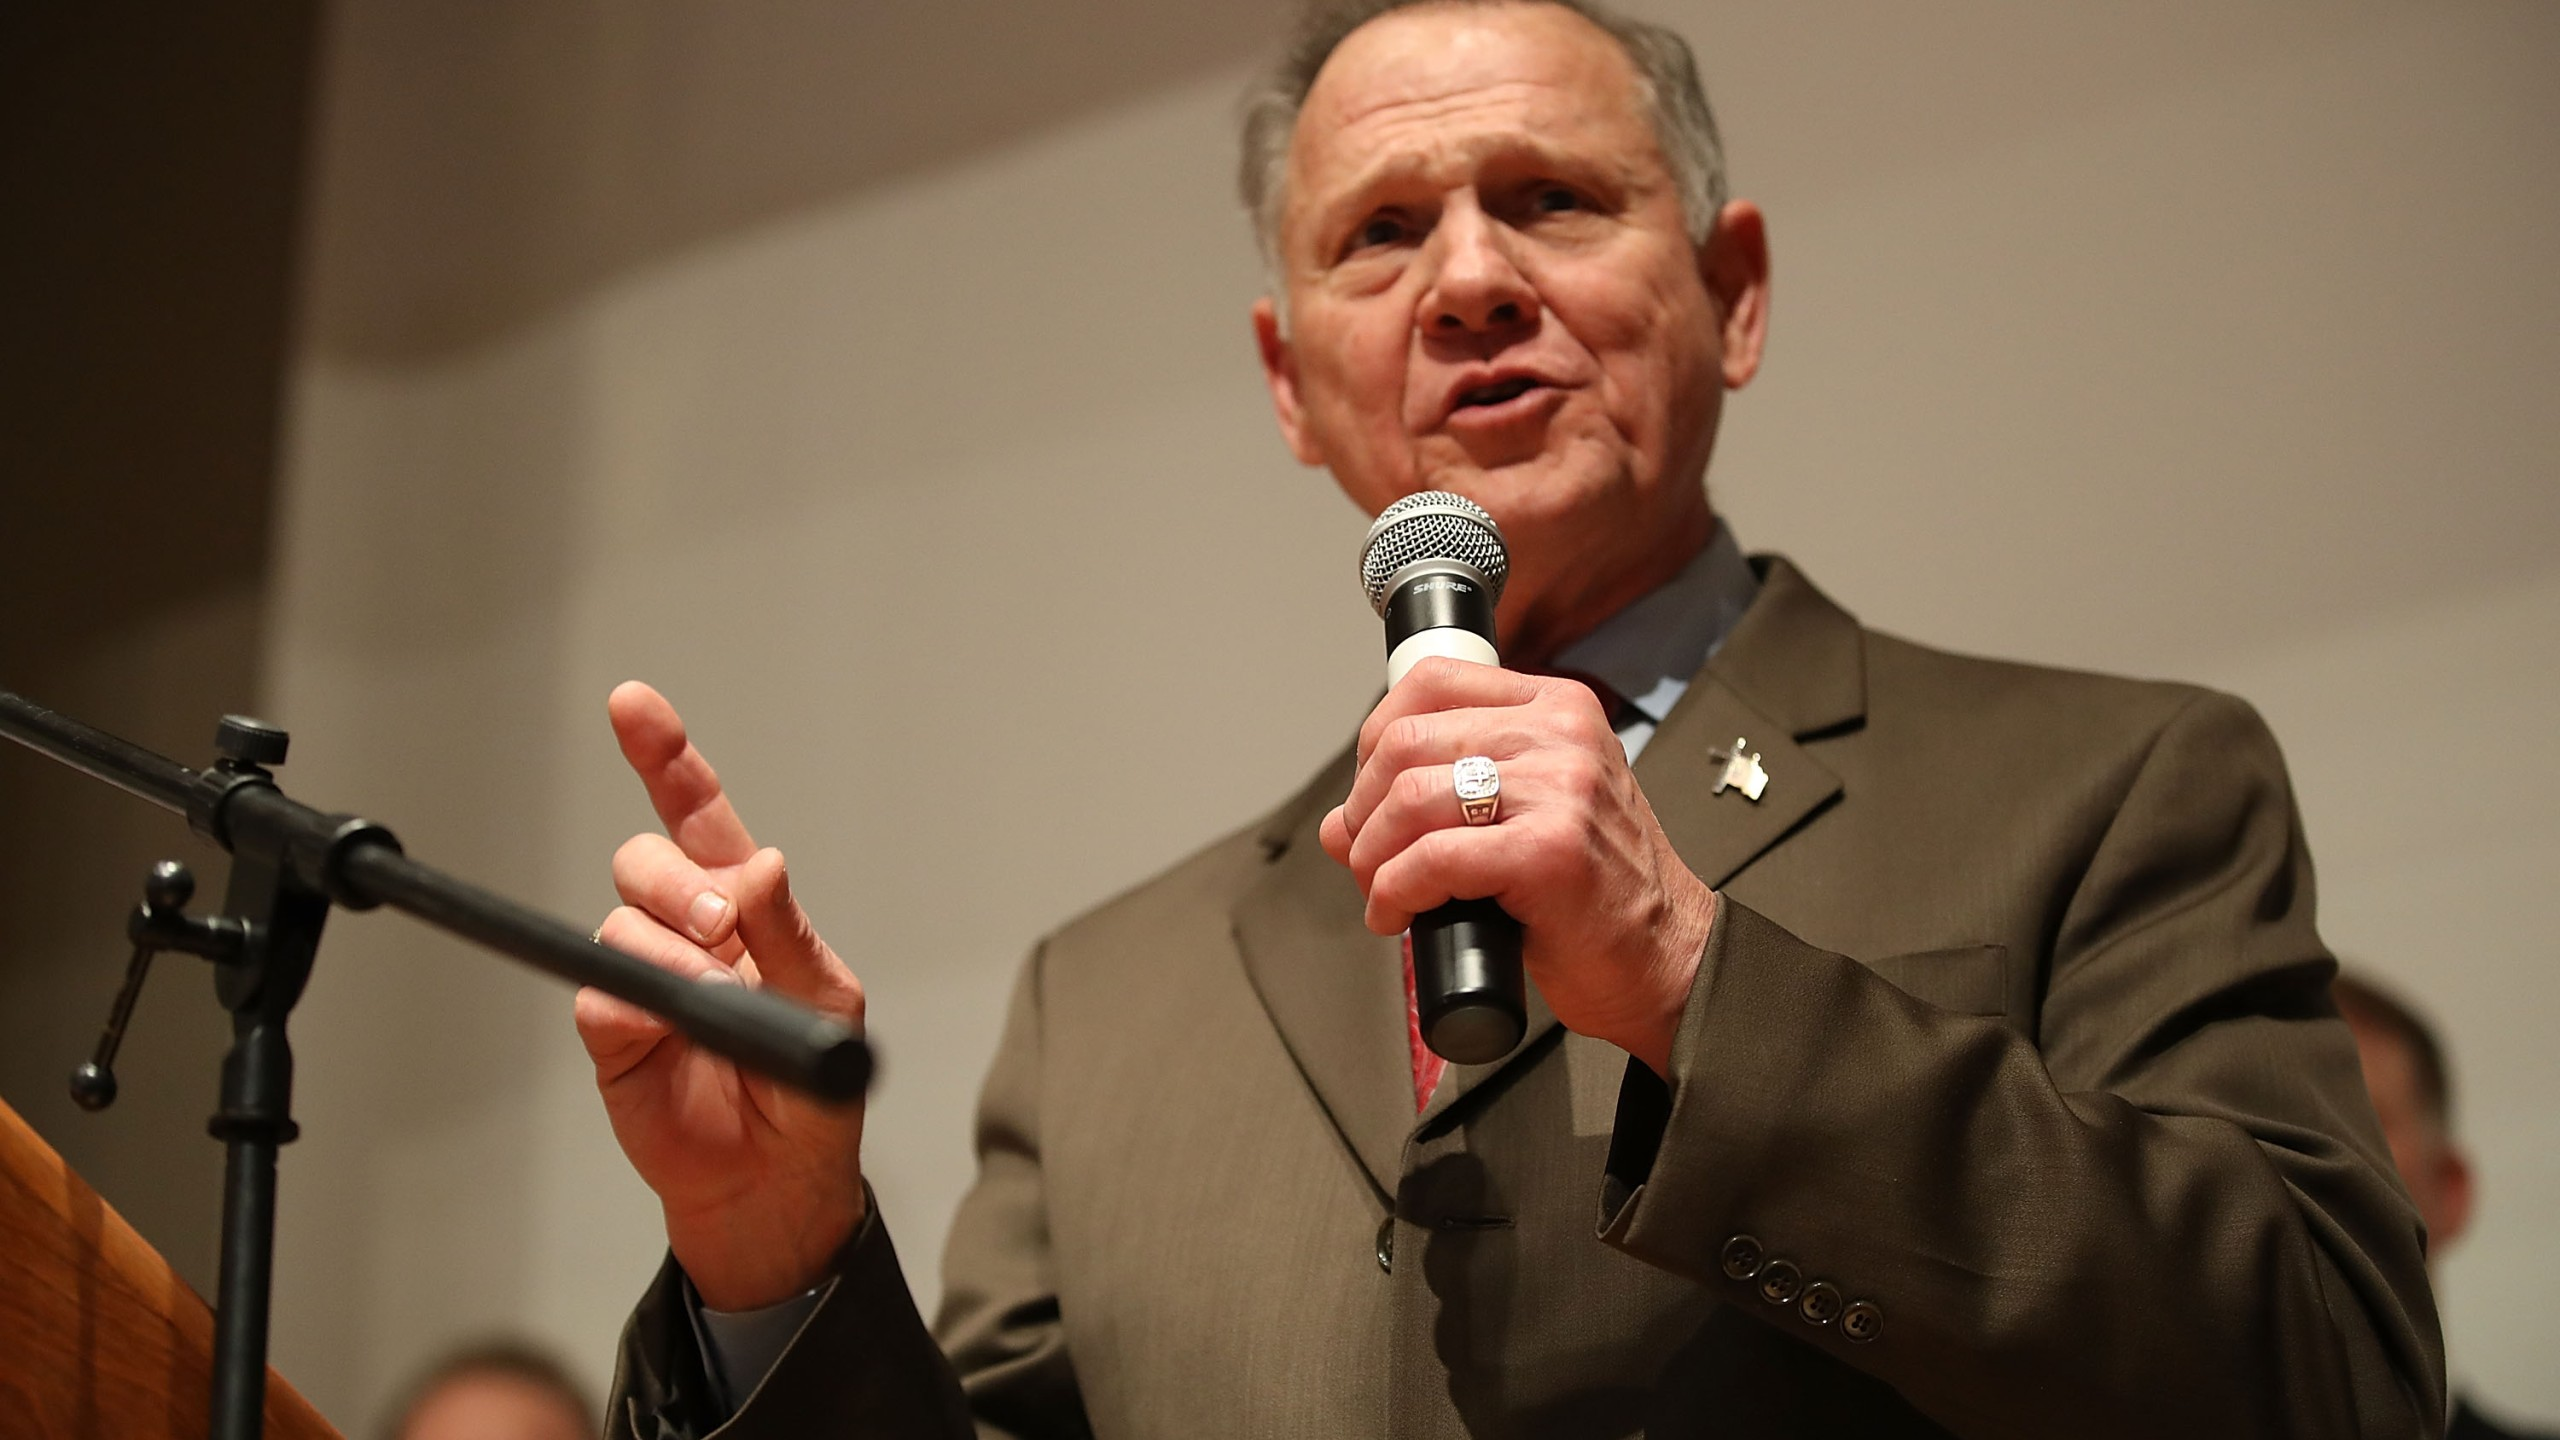 Republican Senatorial candidate Roy Moore speaks about the race against his Democratic opponent Doug Jones on Dec. 12, 2017 in Montgomery, Alabama. (Credit: Joe Raedle/Getty Images)